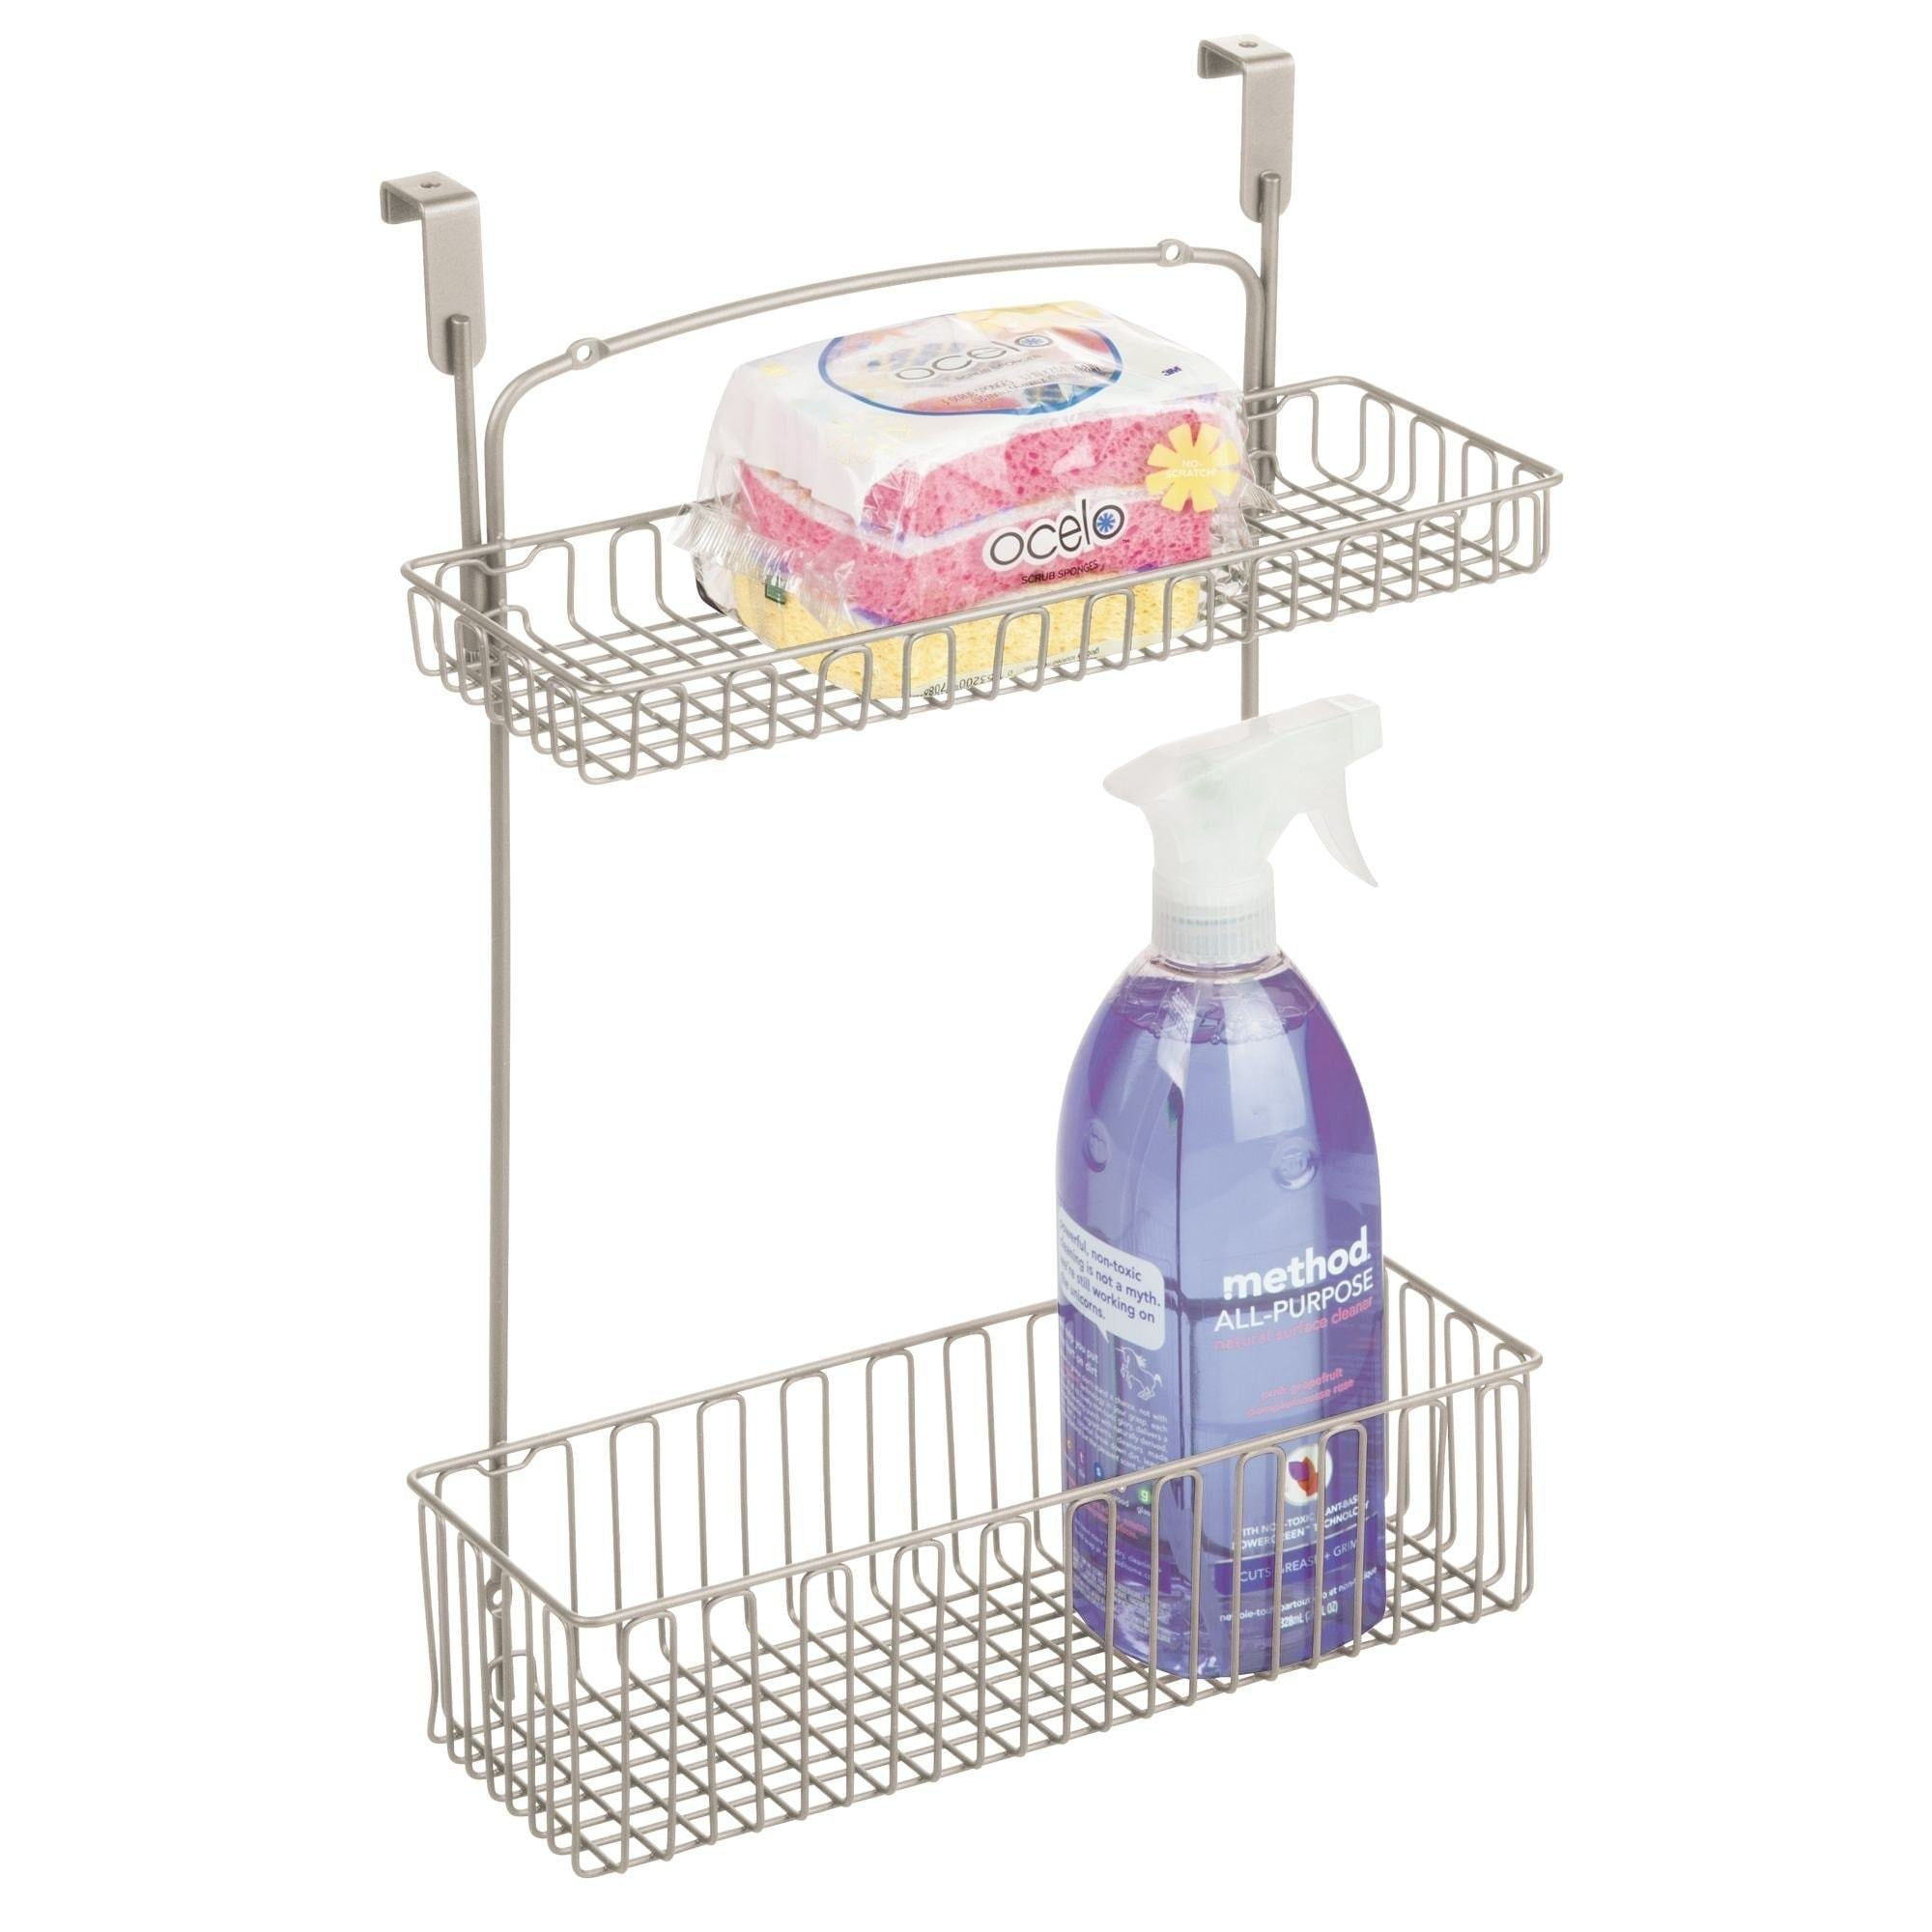 Order now mdesign metal farmhouse over cabinet kitchen storage organizer holder or basket hang over cabinet doors in kitchen pantry holds dish soap window cleaner sponges satin